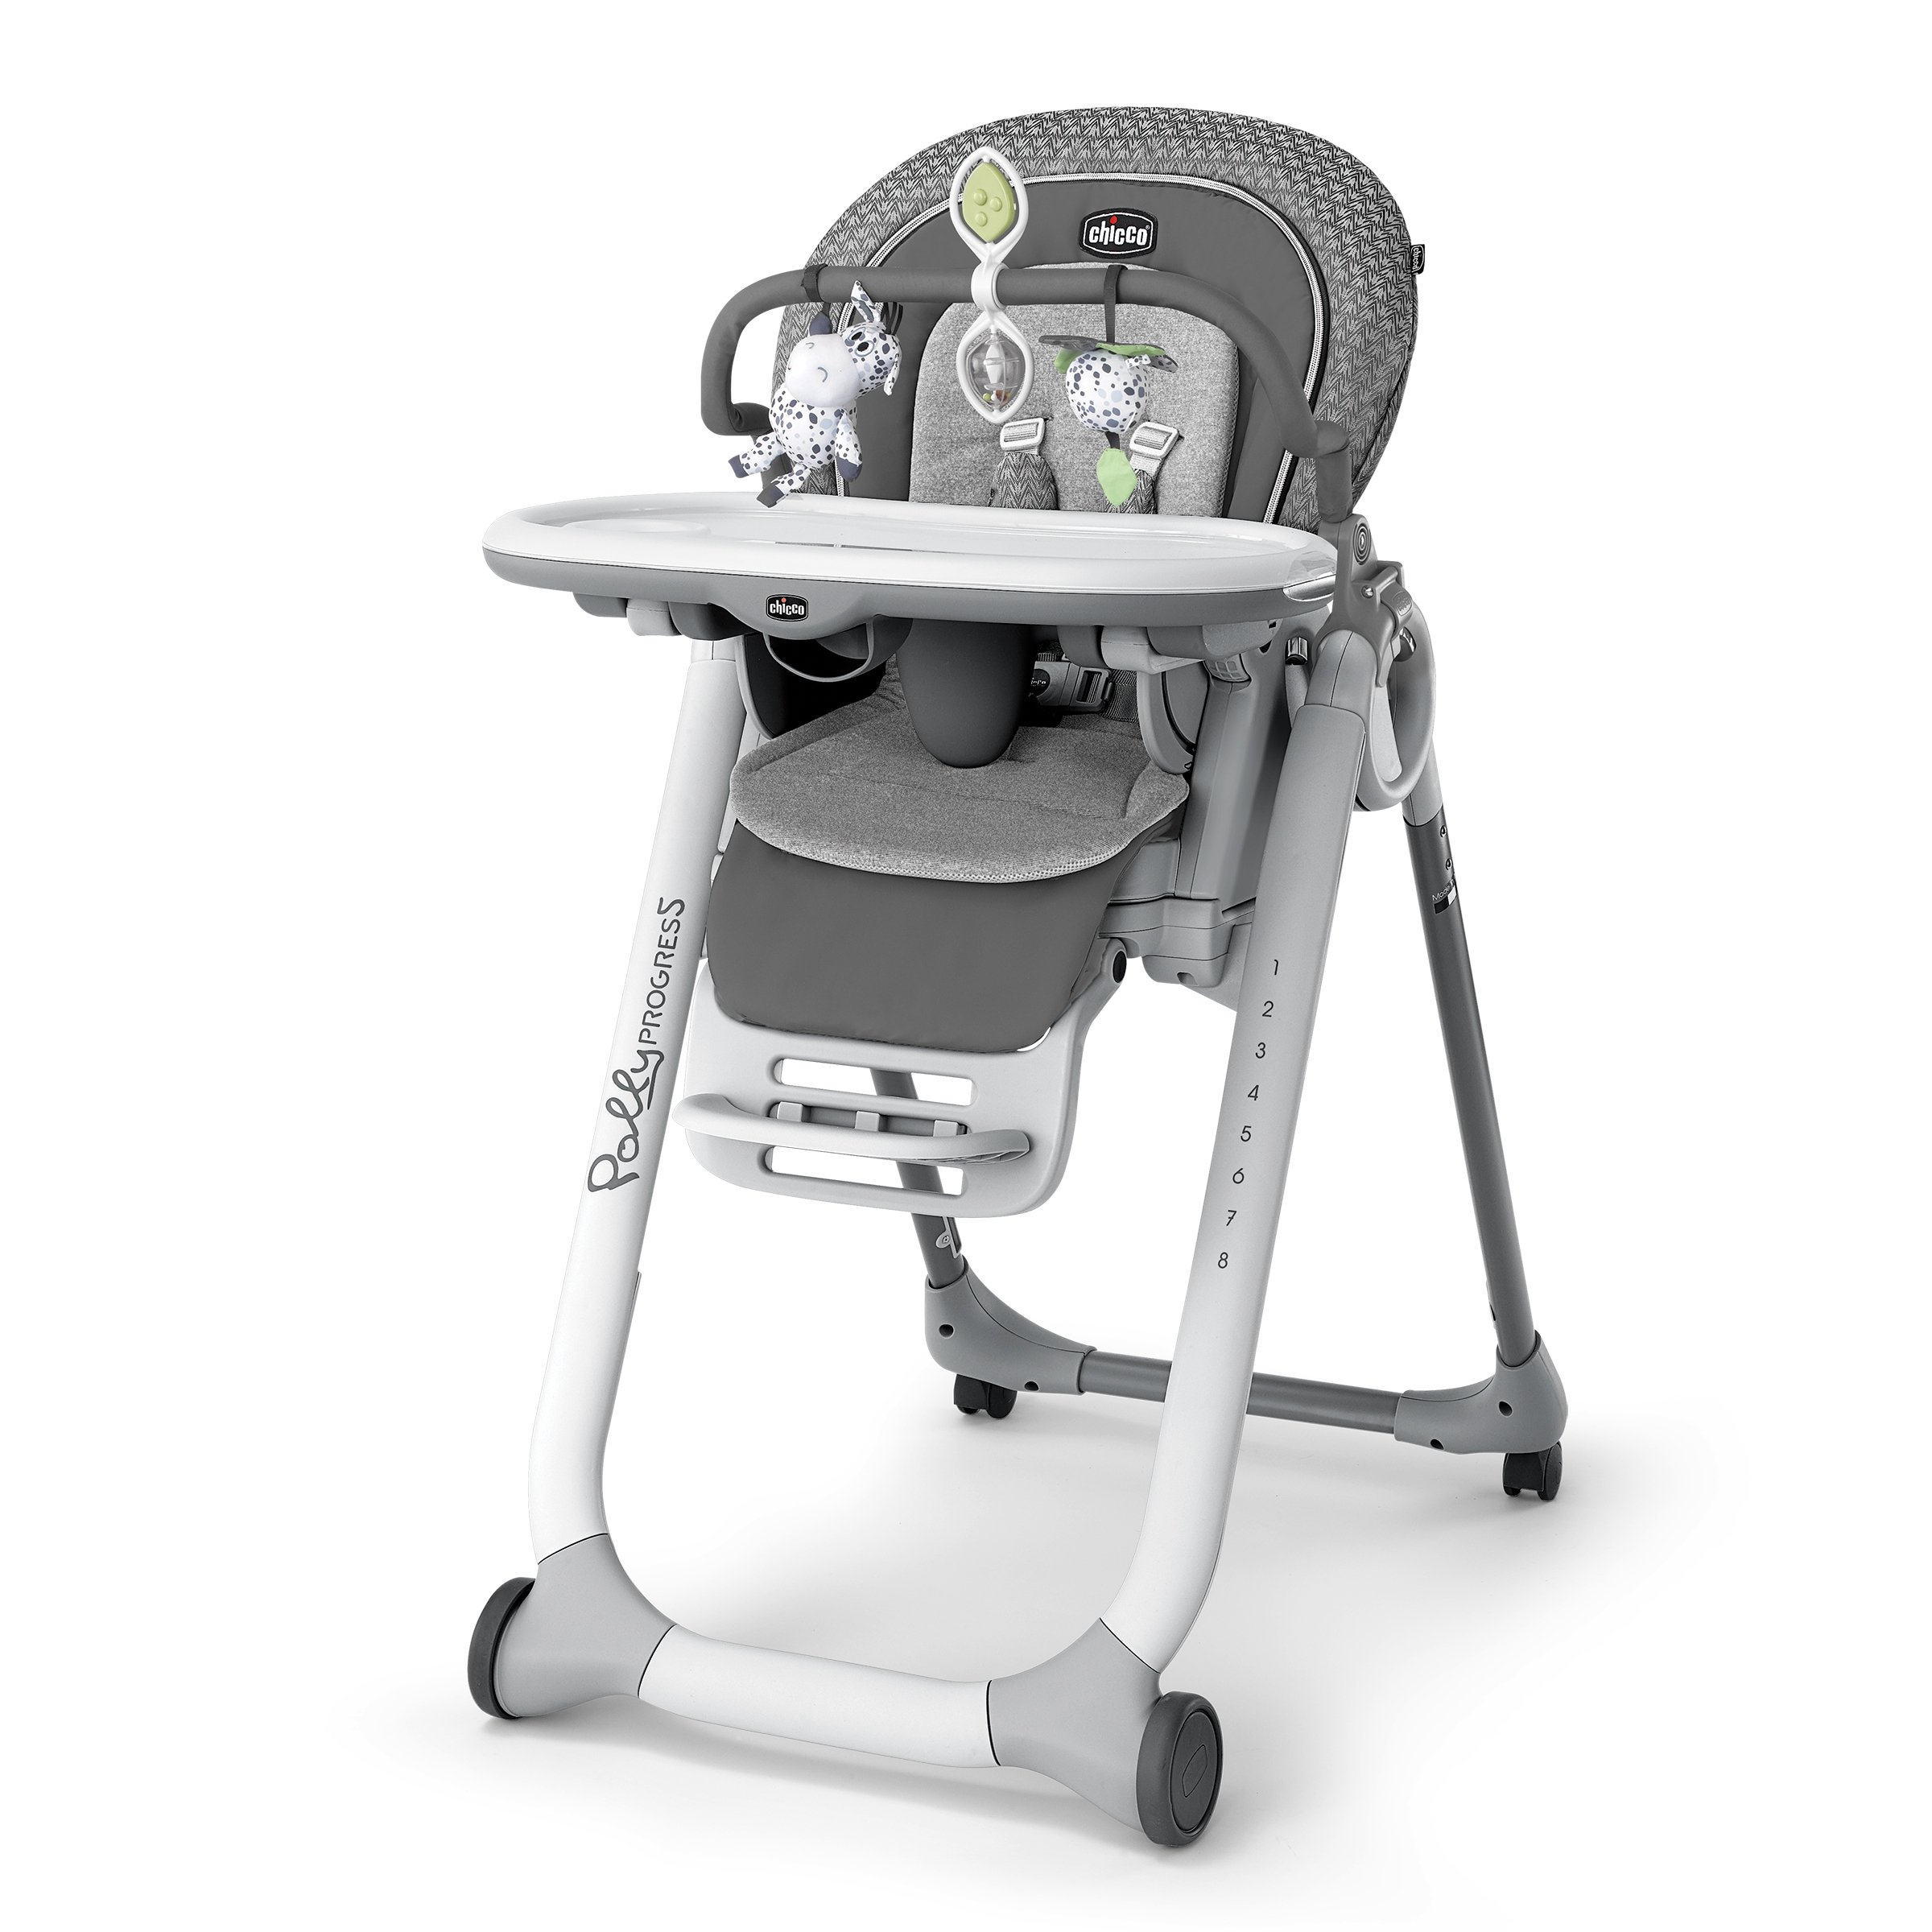 Chicco Progress Relax Highchair, Silhouette by Chicco